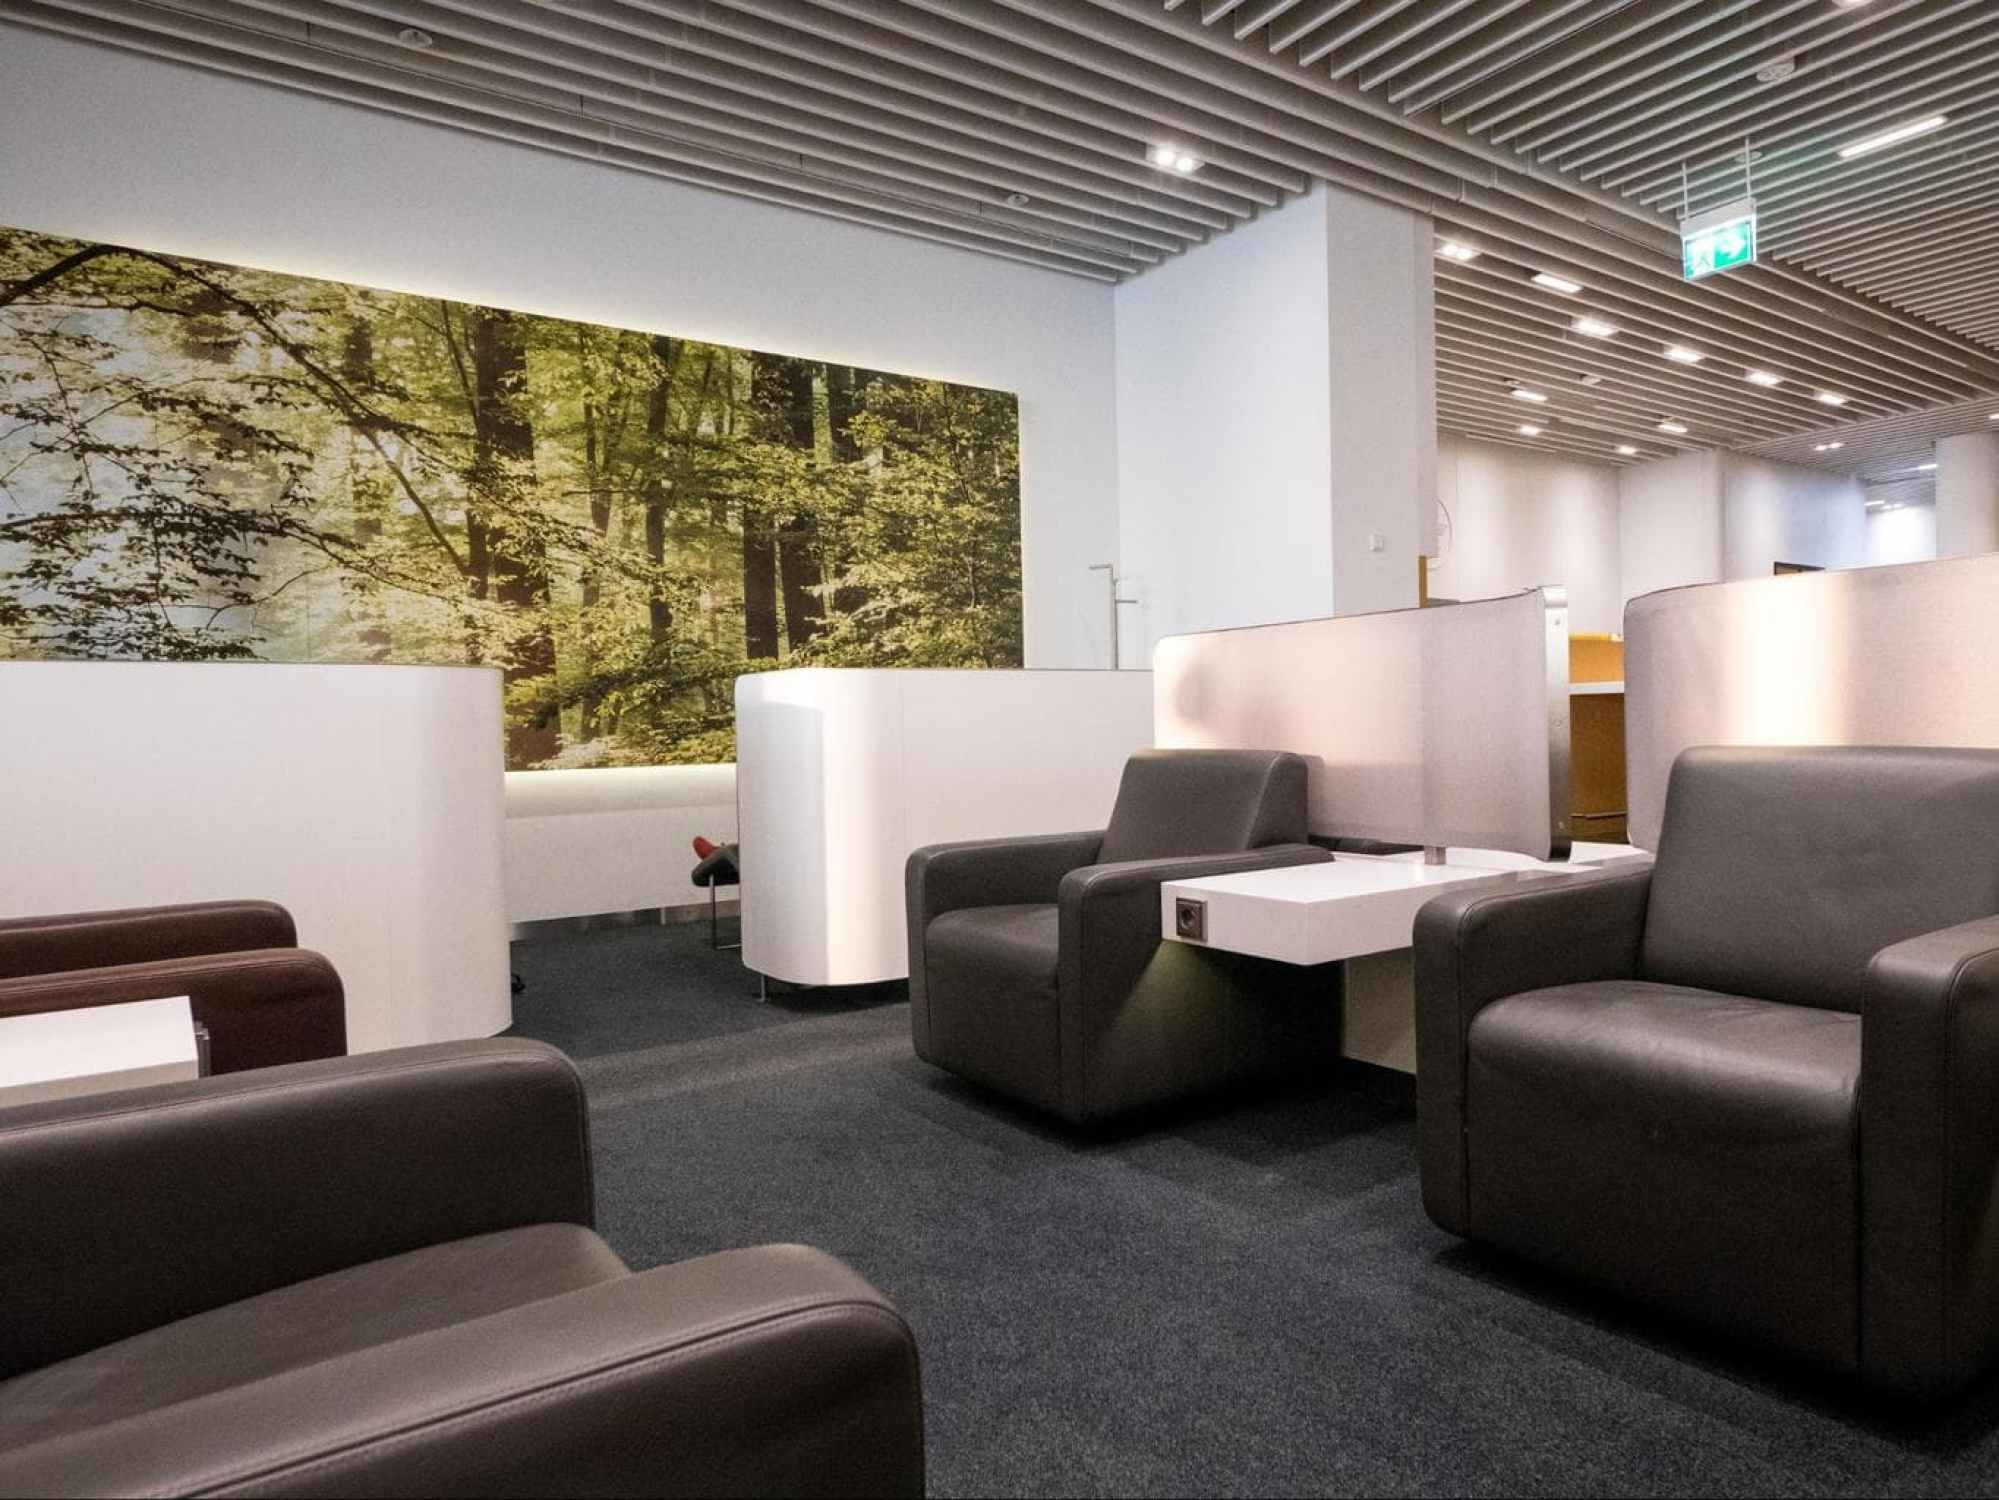 Sofas and relaxation area in Lufthansa Business Class Lounge at Munich Airport